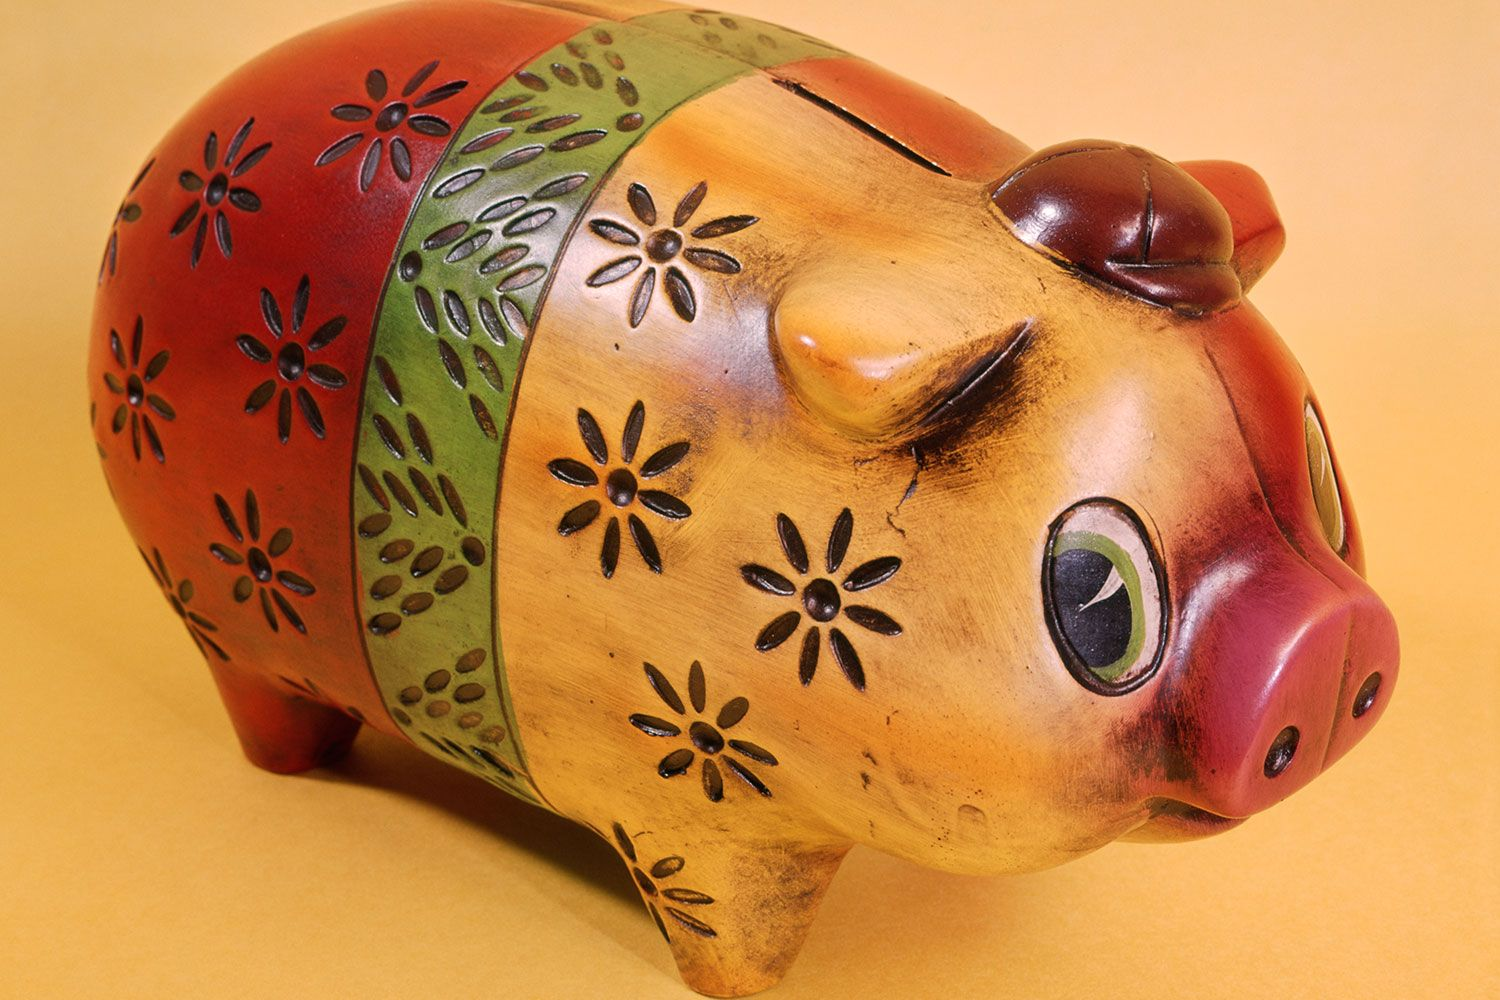 45 Antiques Worth a Lot of Money - Valuable Antiques and